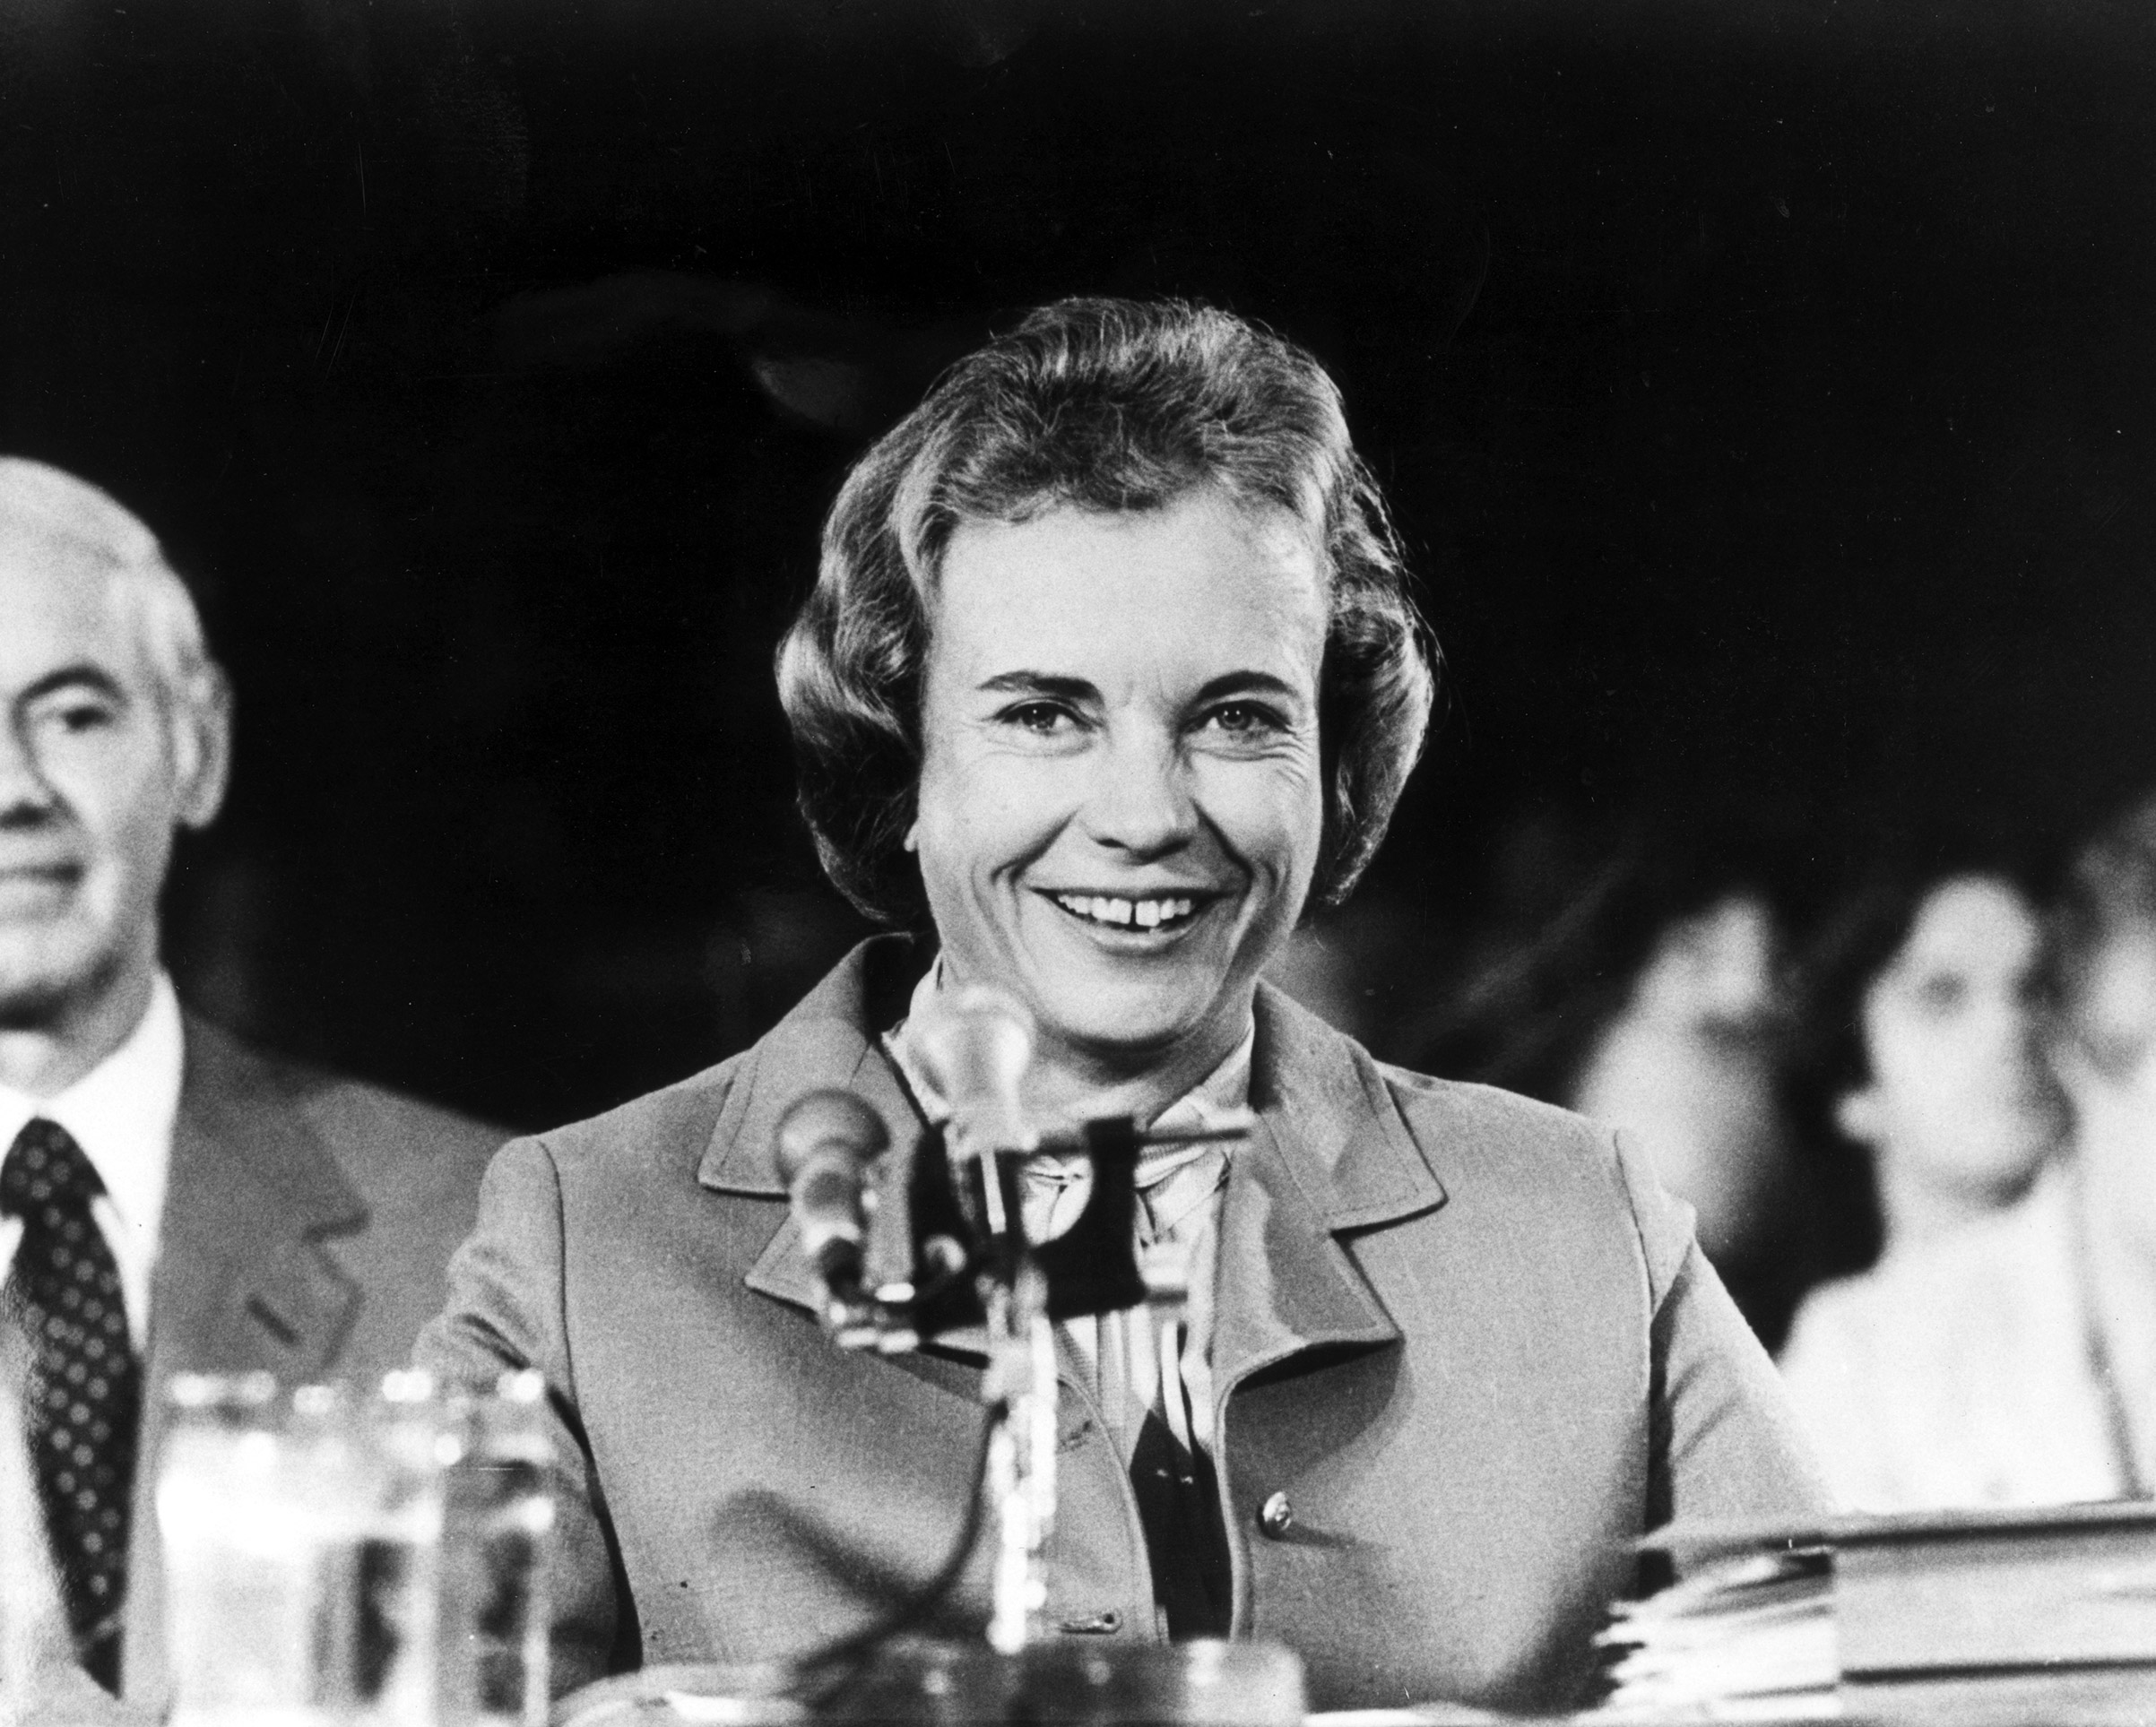 SANDRA DAY O'CONNOR became the first woman to serve on the U.S. Supreme Court in 1981.